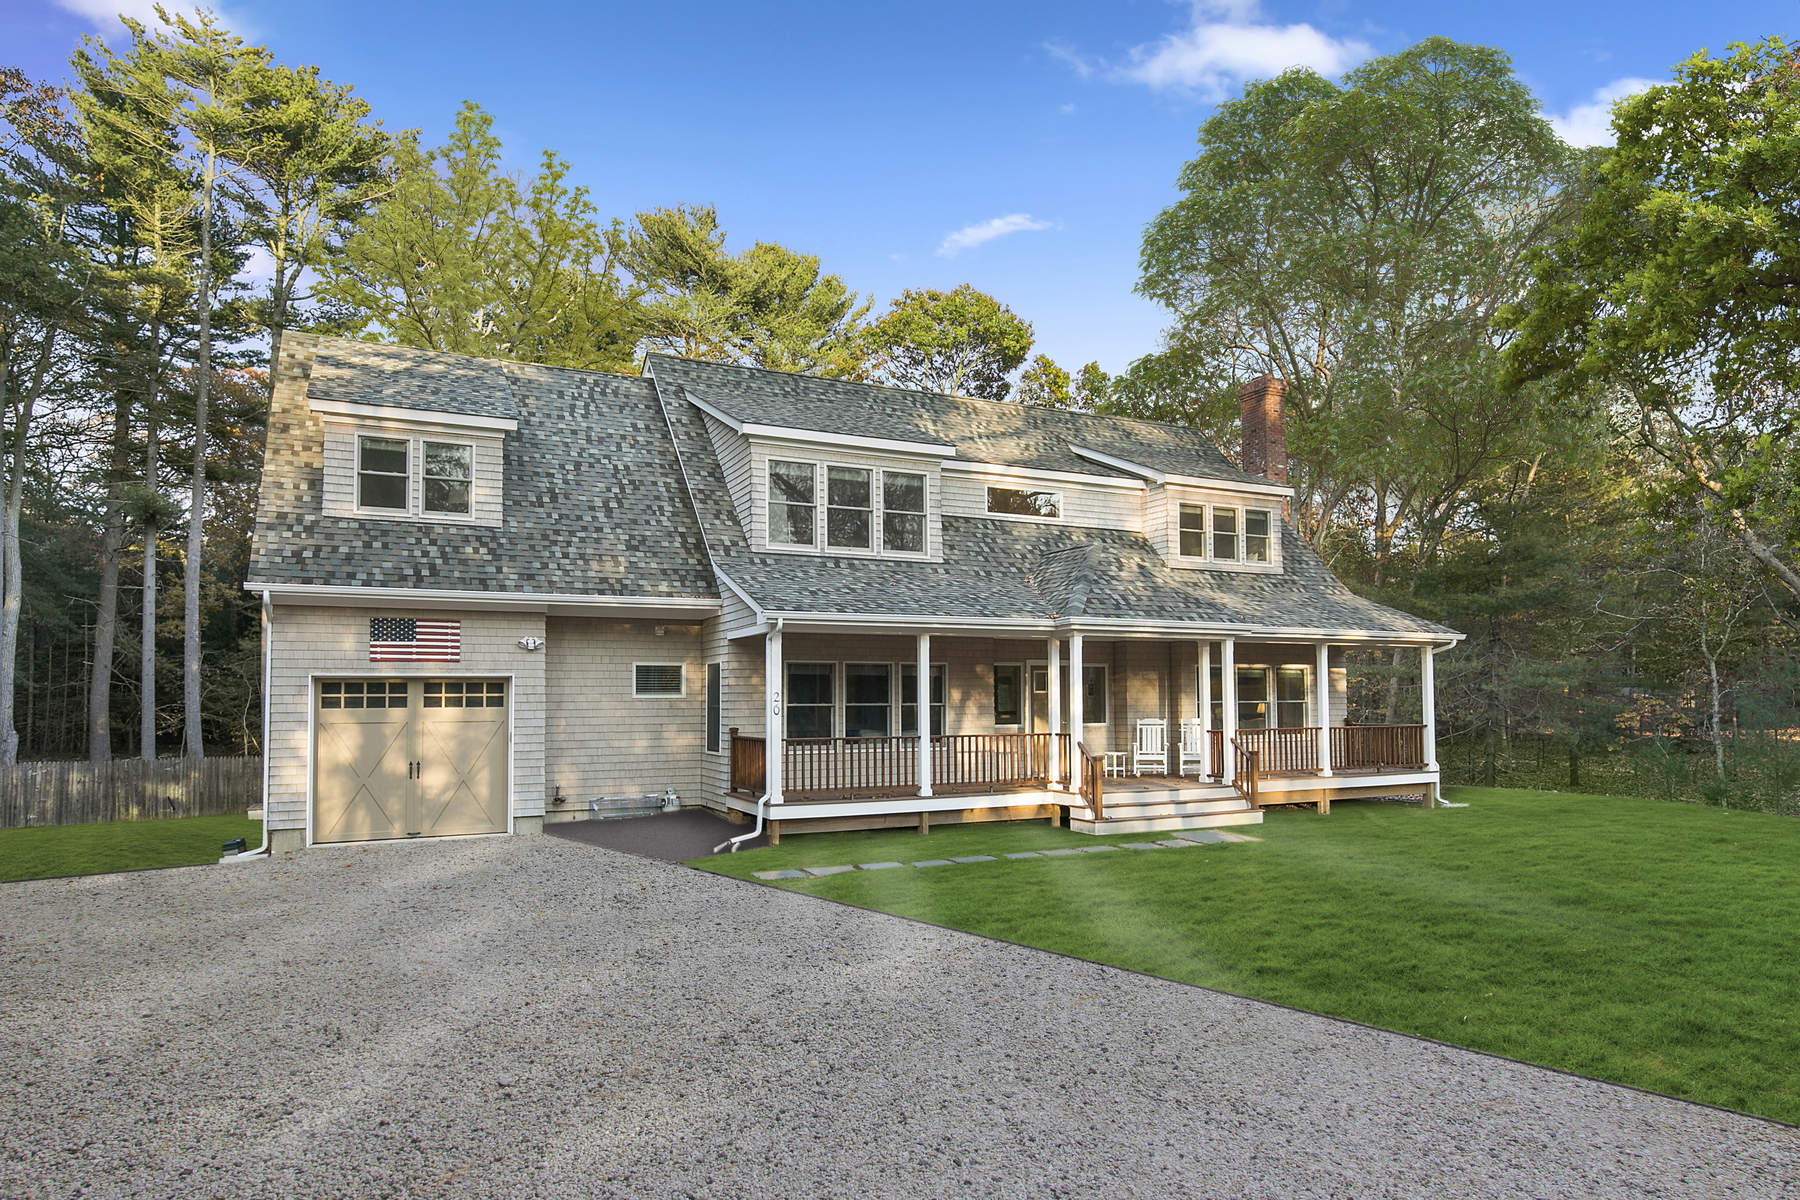 Single Family Home for Rent at SPACIOUS TRADITIONAL 20 Saddle Lane East Hampton, New York 11937 United States